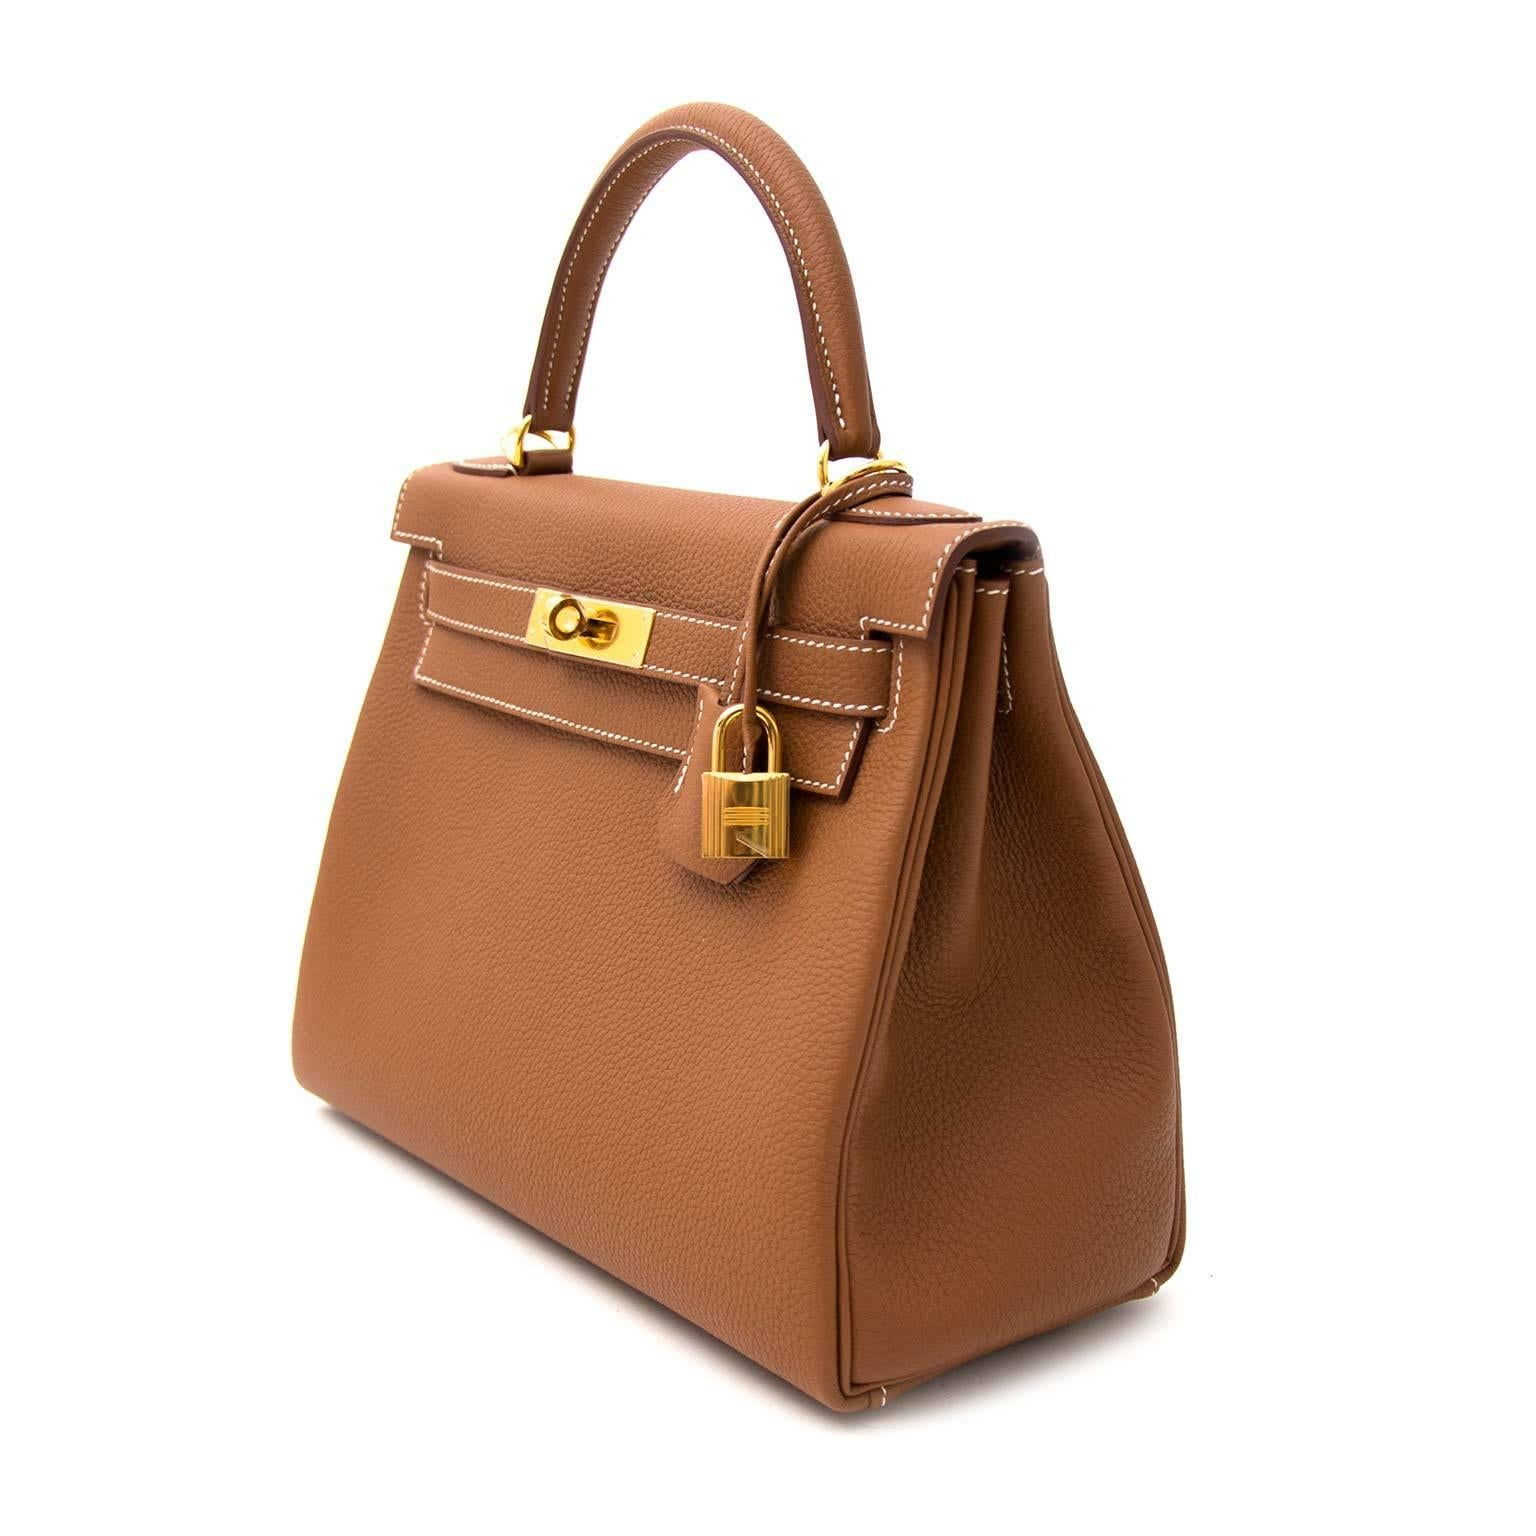 509b98bbb0a ... coupon hermès kelly 28 togo gold ghw for sale 1 0c845 85951 ...